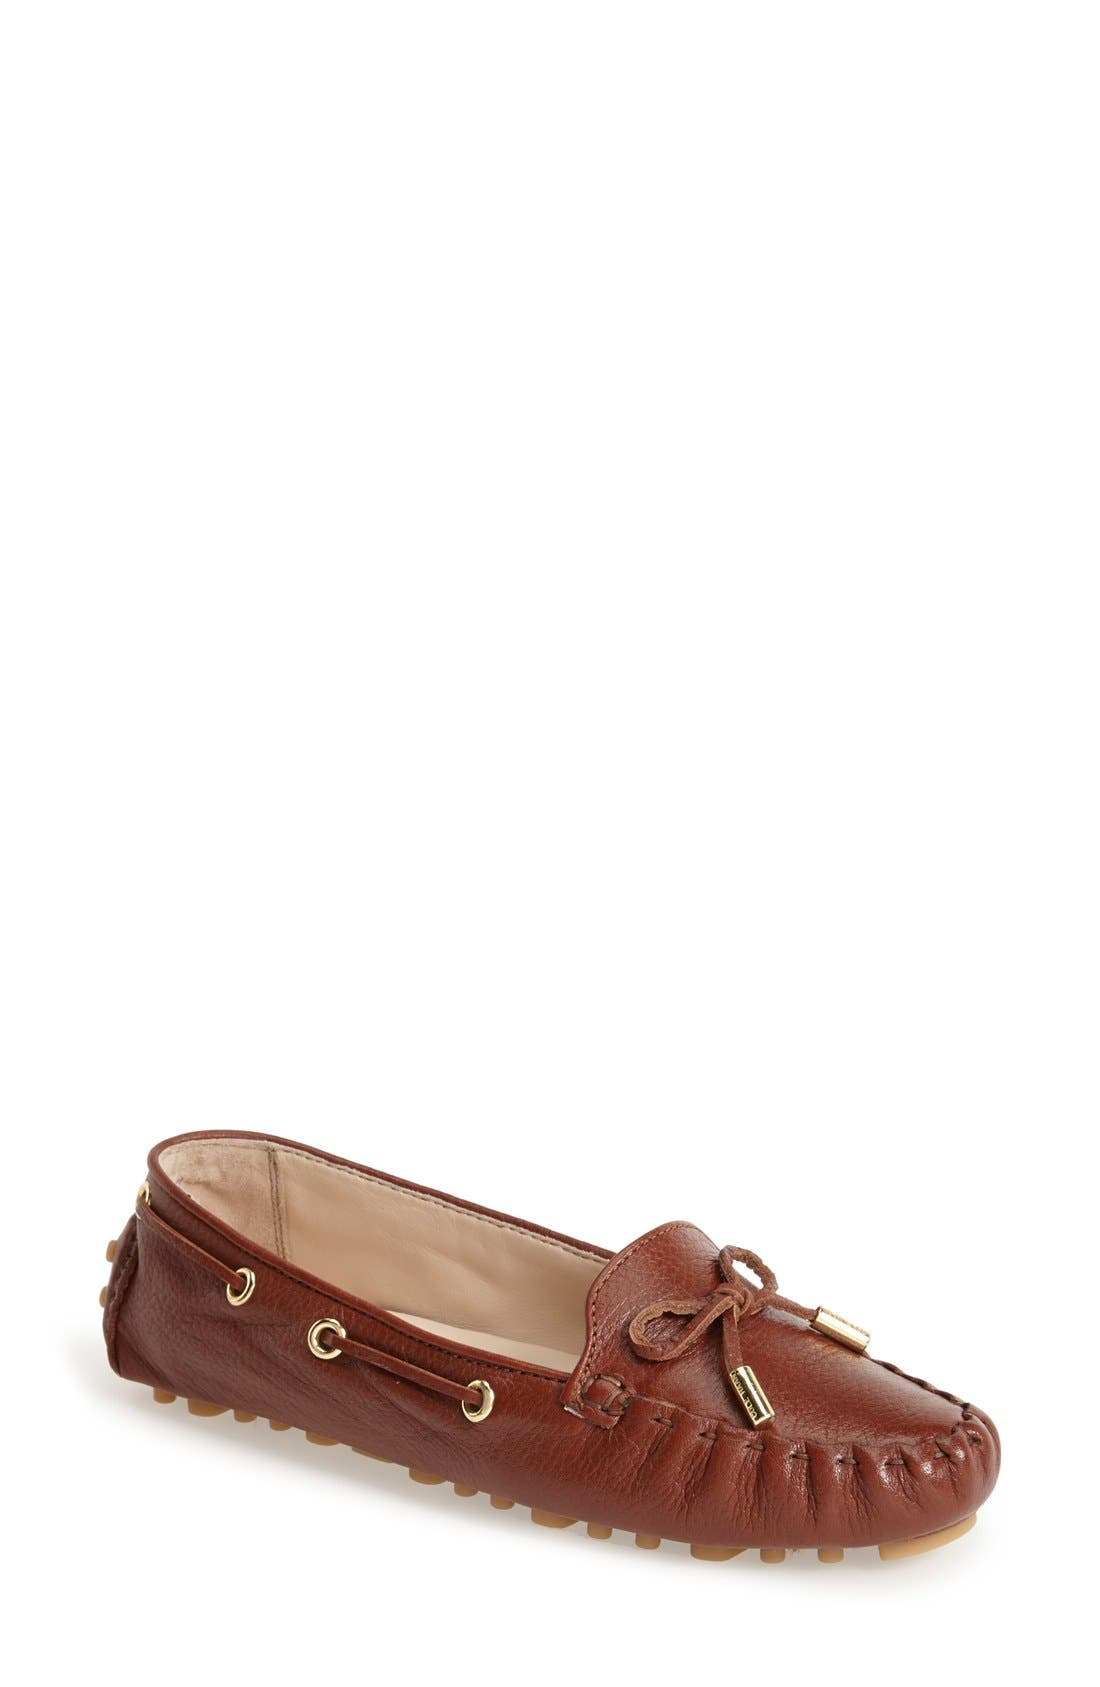 Main Image - Cole Haan 'Cary' Leather Driving Flat (Women)